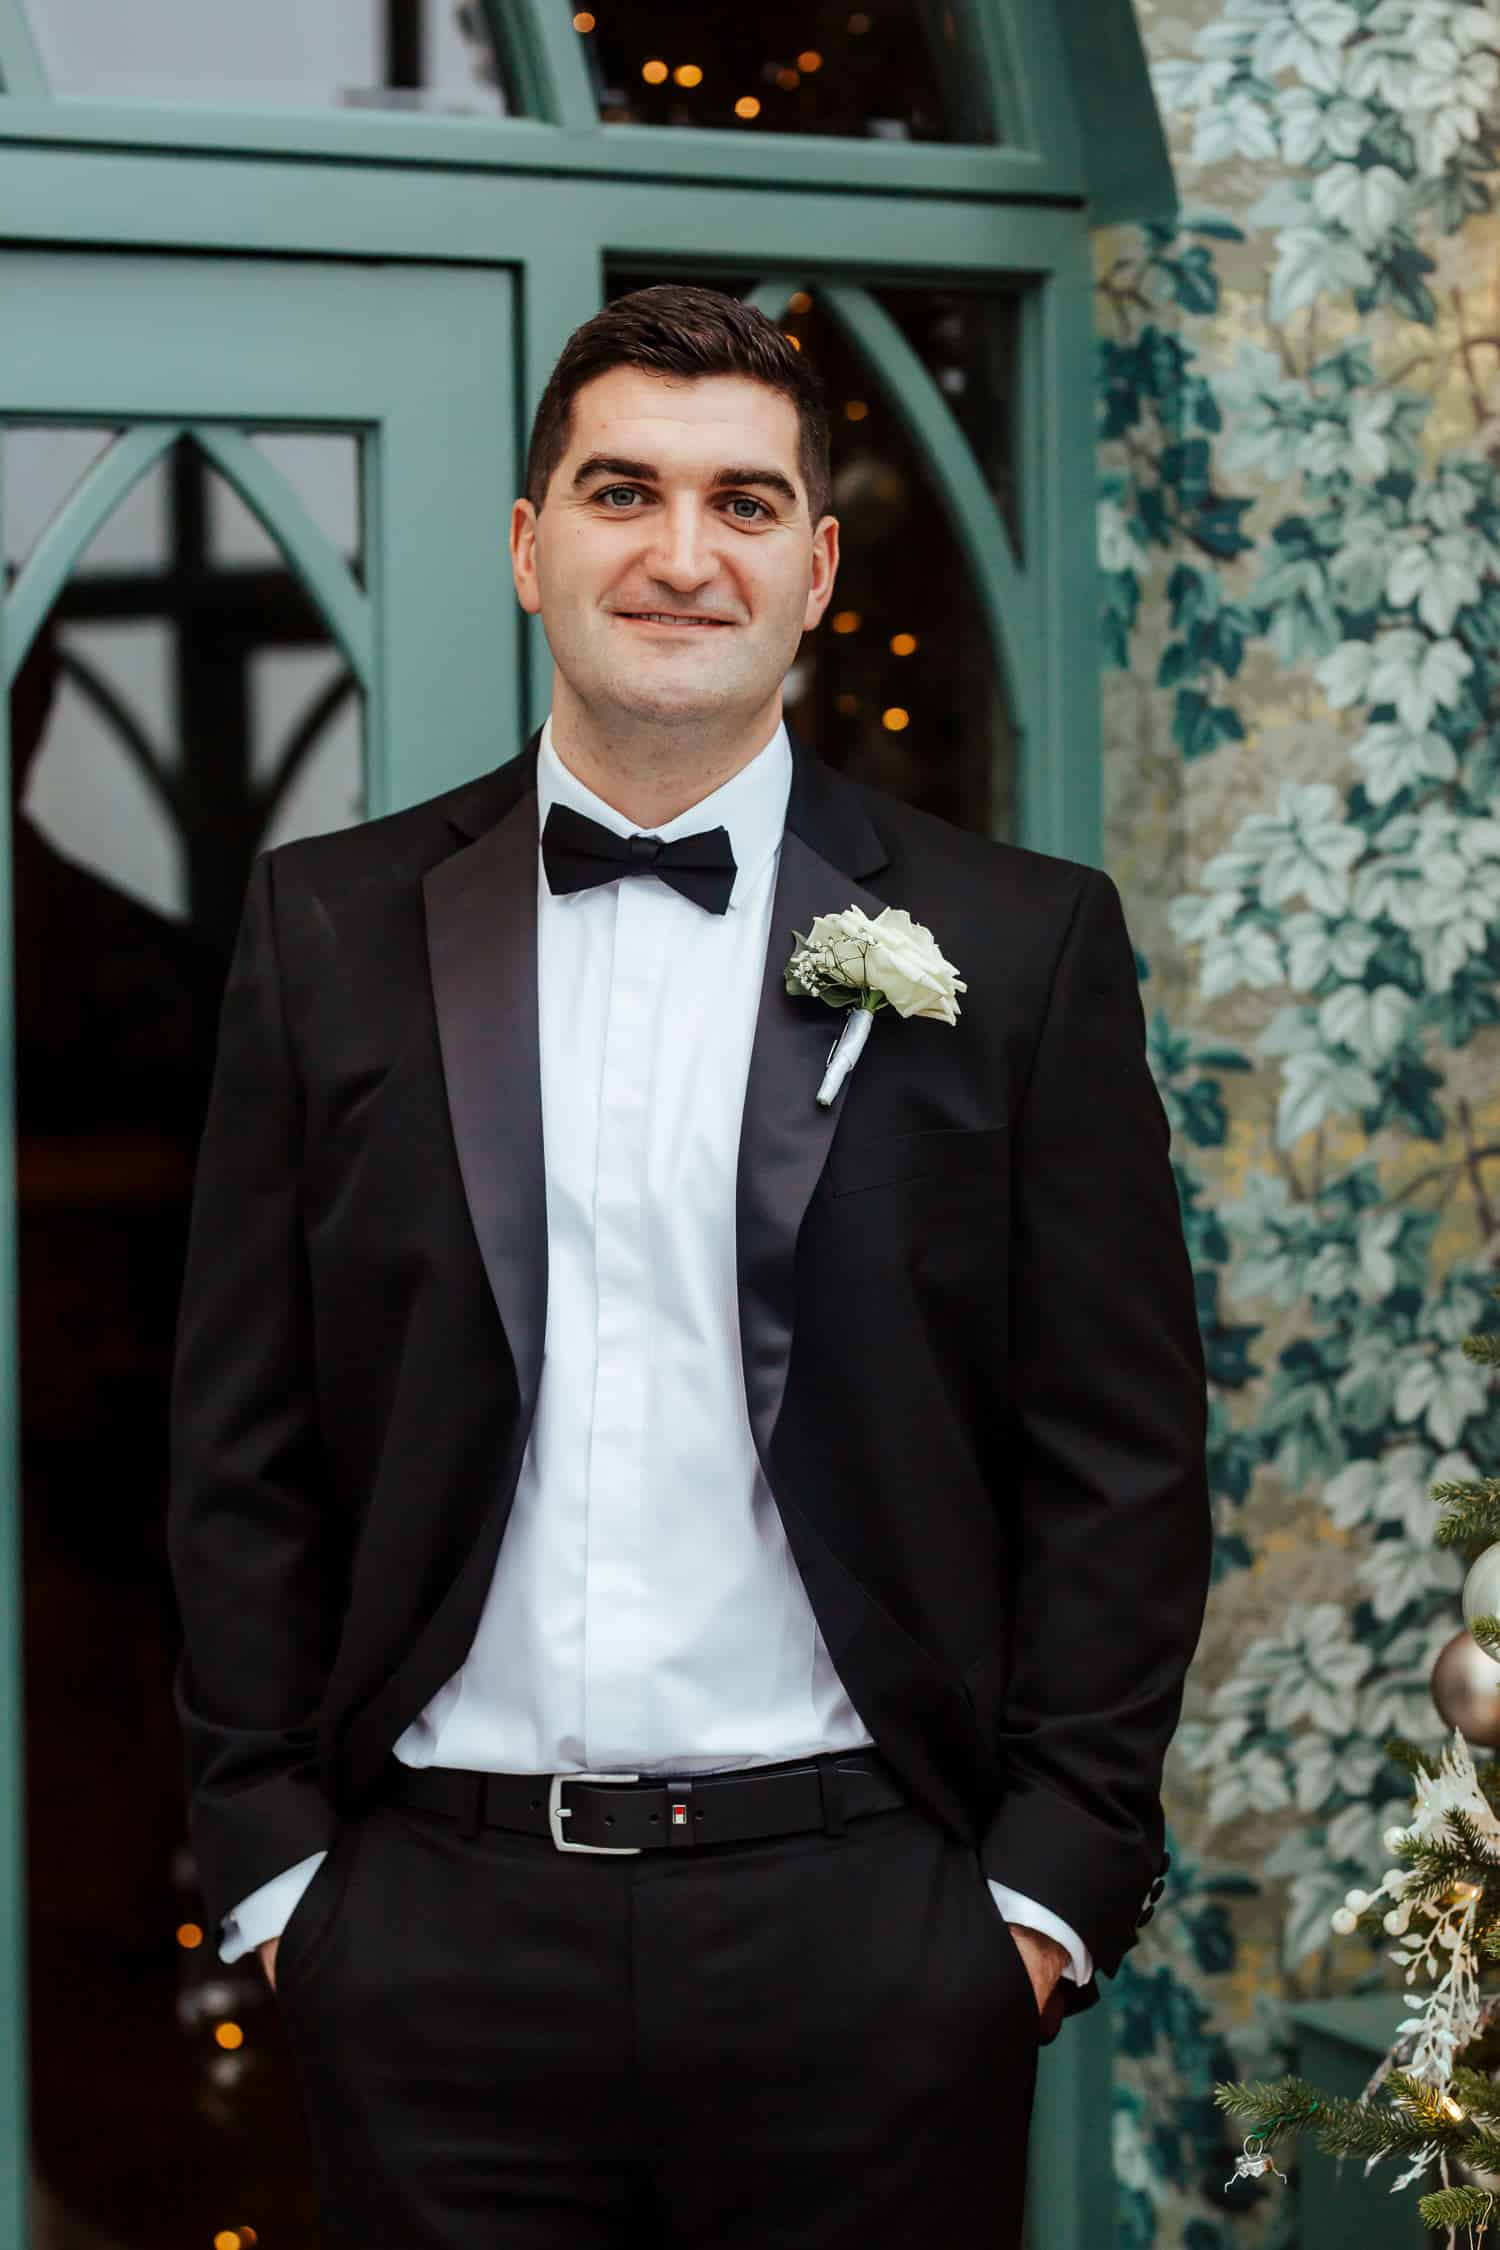 portrait of the groom at glenlo abbey wedding